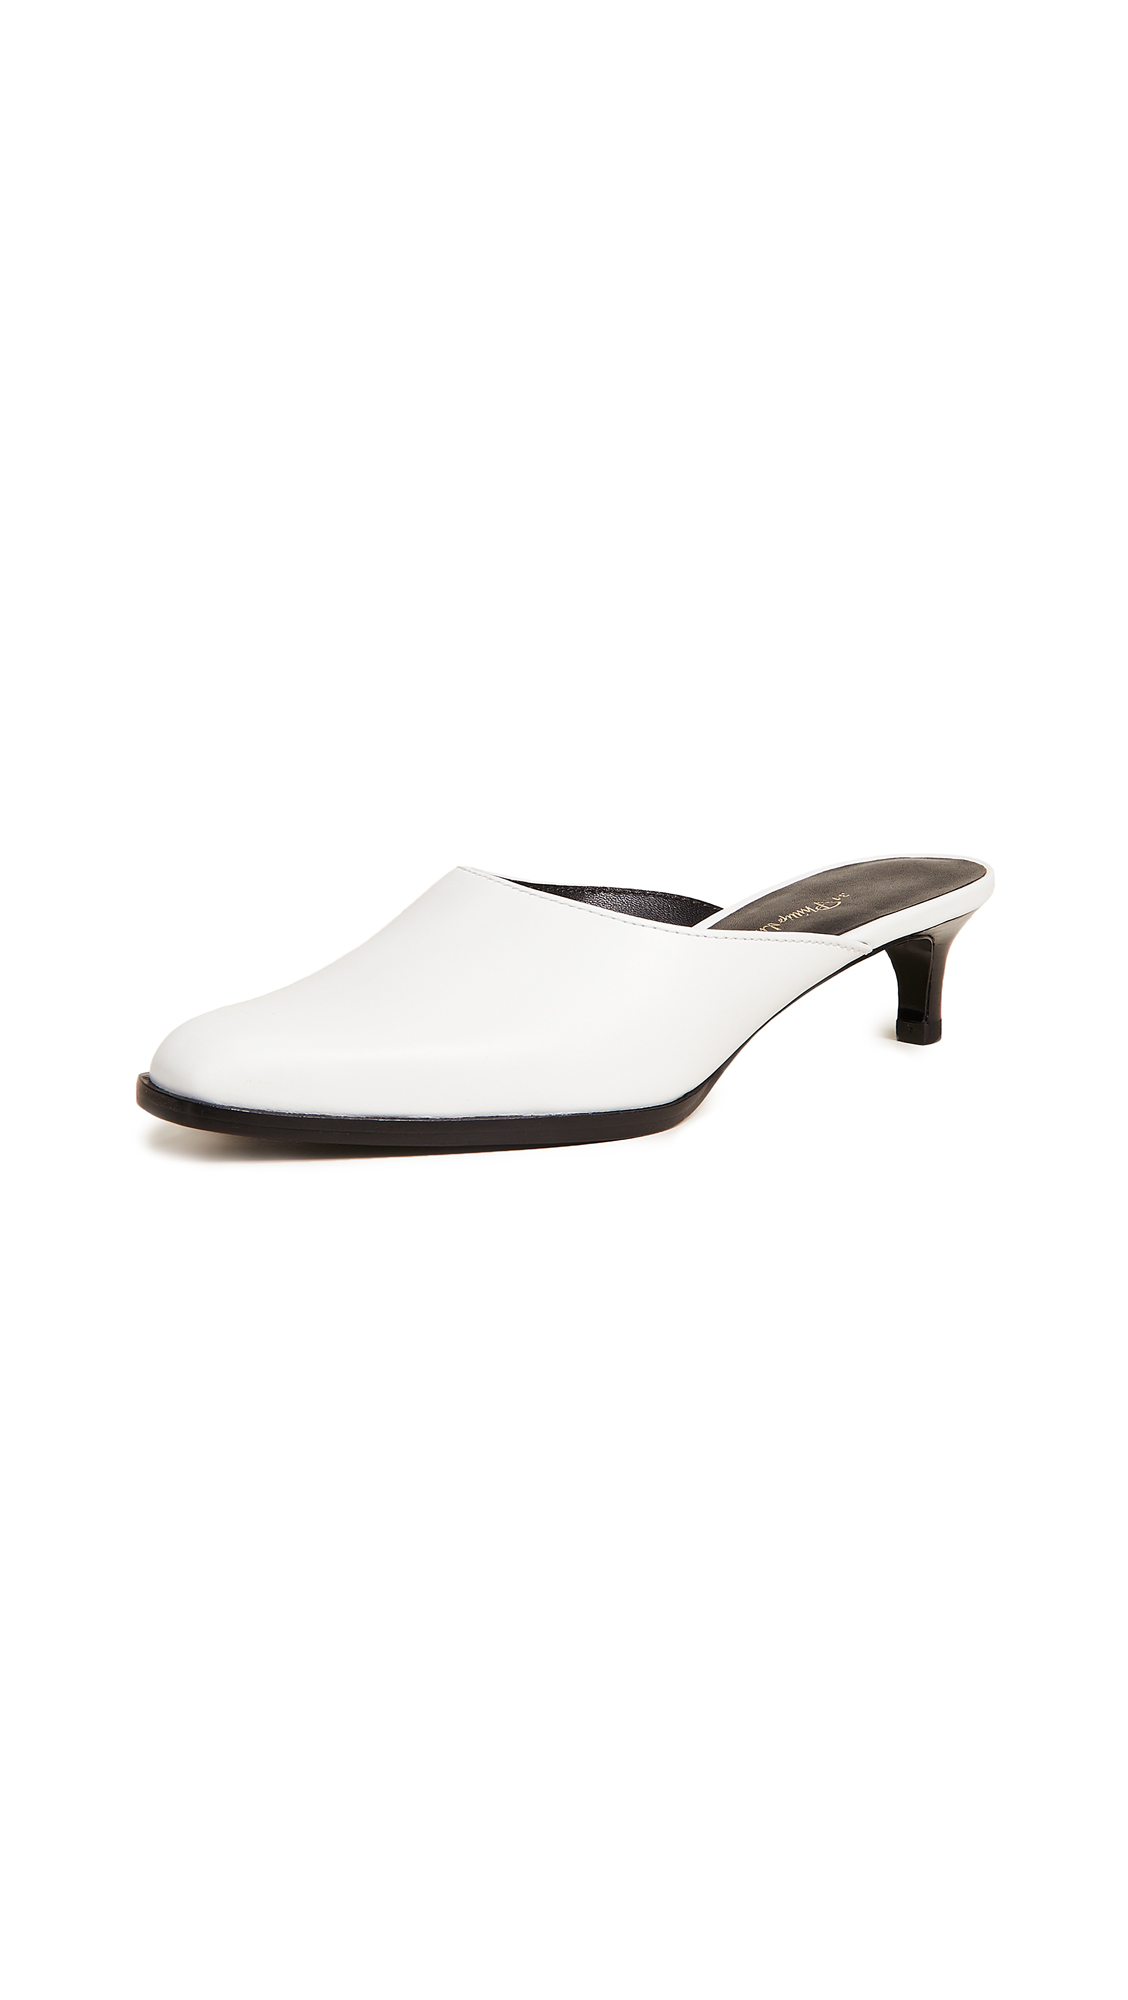 3.1 Phillip Lim Agatha Kitten Mules - Optic White